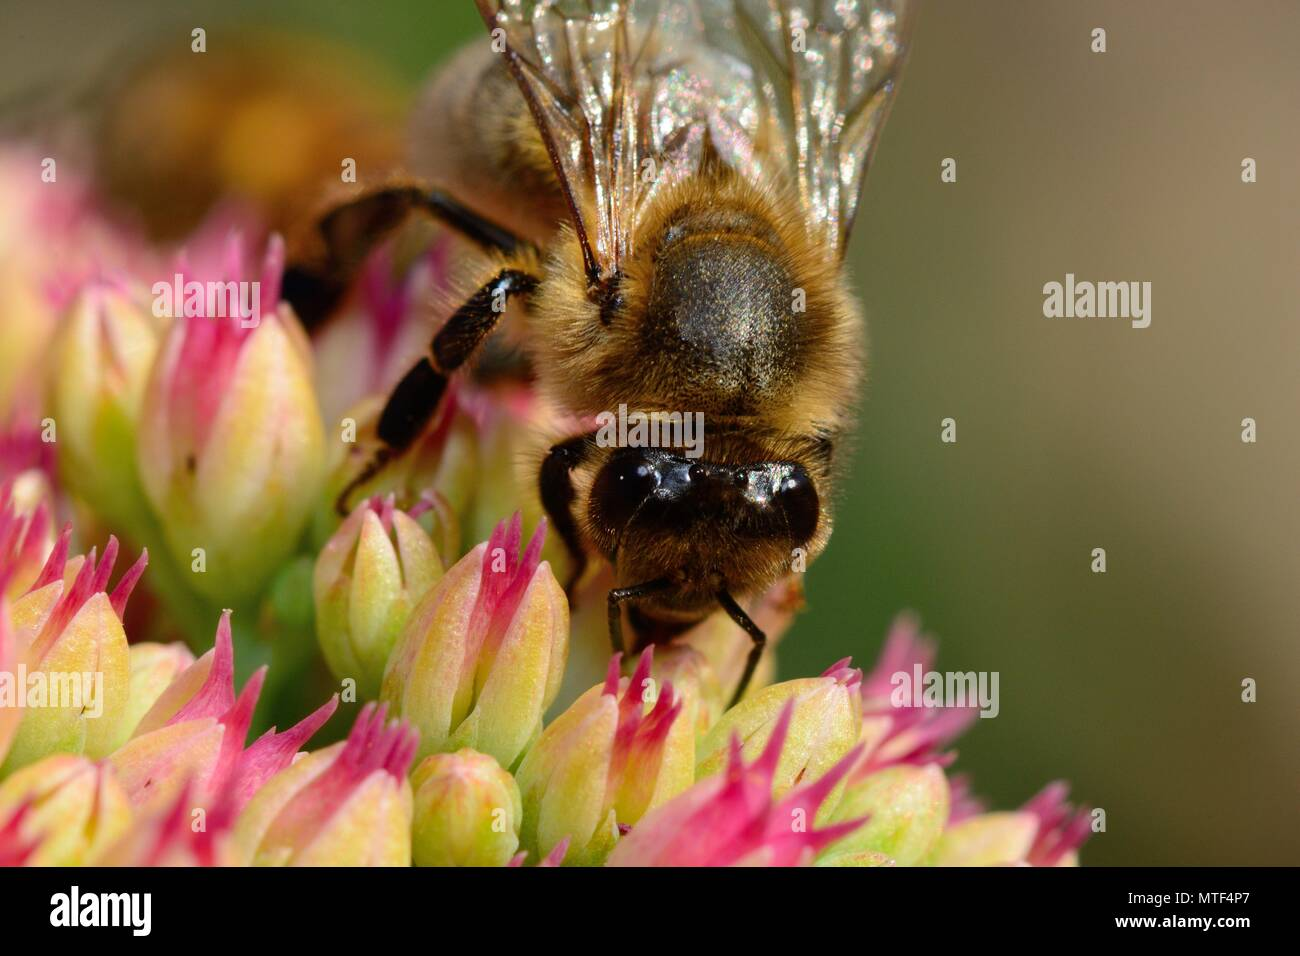 Macro shot of a honey bee pollinating a sedum flower - Stock Image